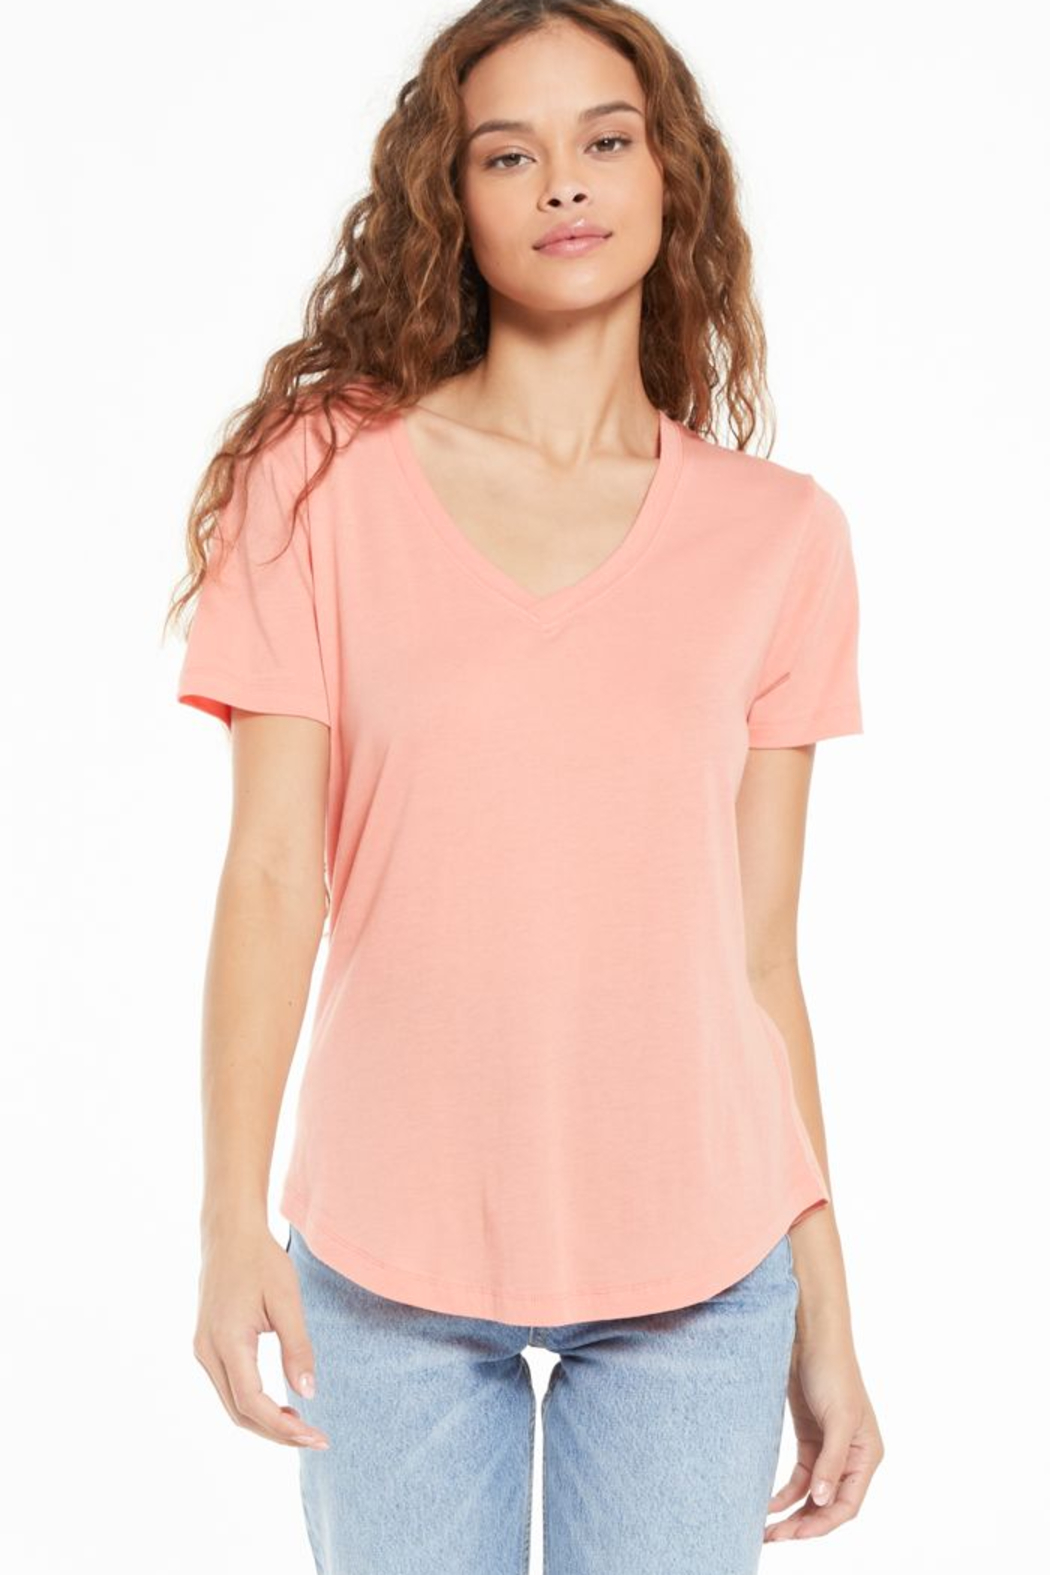 z supply Kasey Modal V-Neck Tee - Front Cropped Image